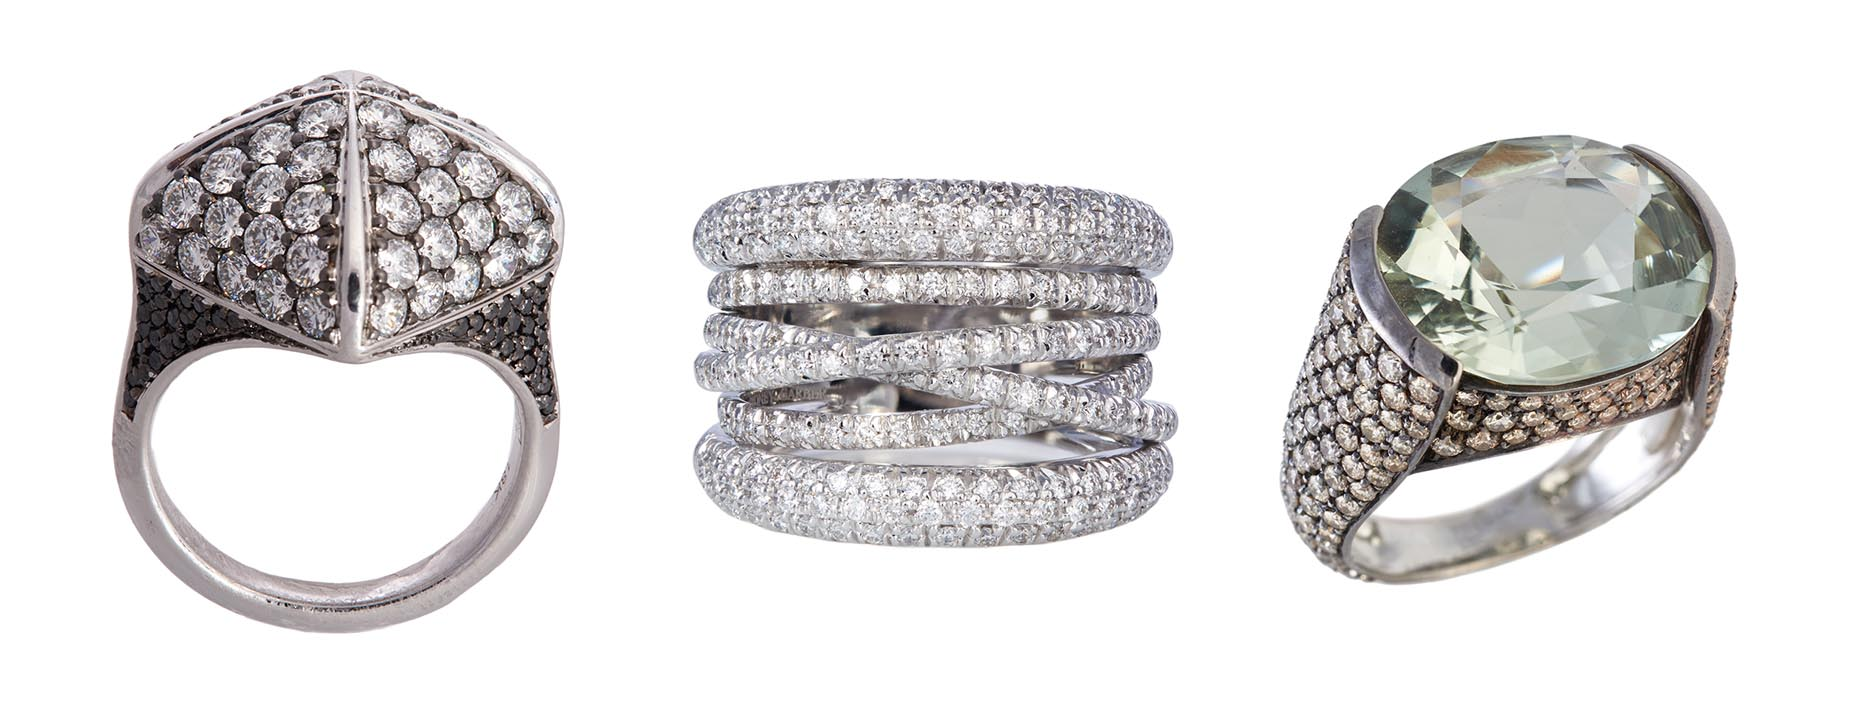 Other Sidney Garber rings sparkling on Bread Face's fingers include 18K white gold, black and white diamonds Pyramid Ring with a dark rhodium finish, 18K white gold and diamond Scribble Ring and 18K white gold, mint tourmaline and cognac diamond Well Tailored Ring with a dark rhodium finish